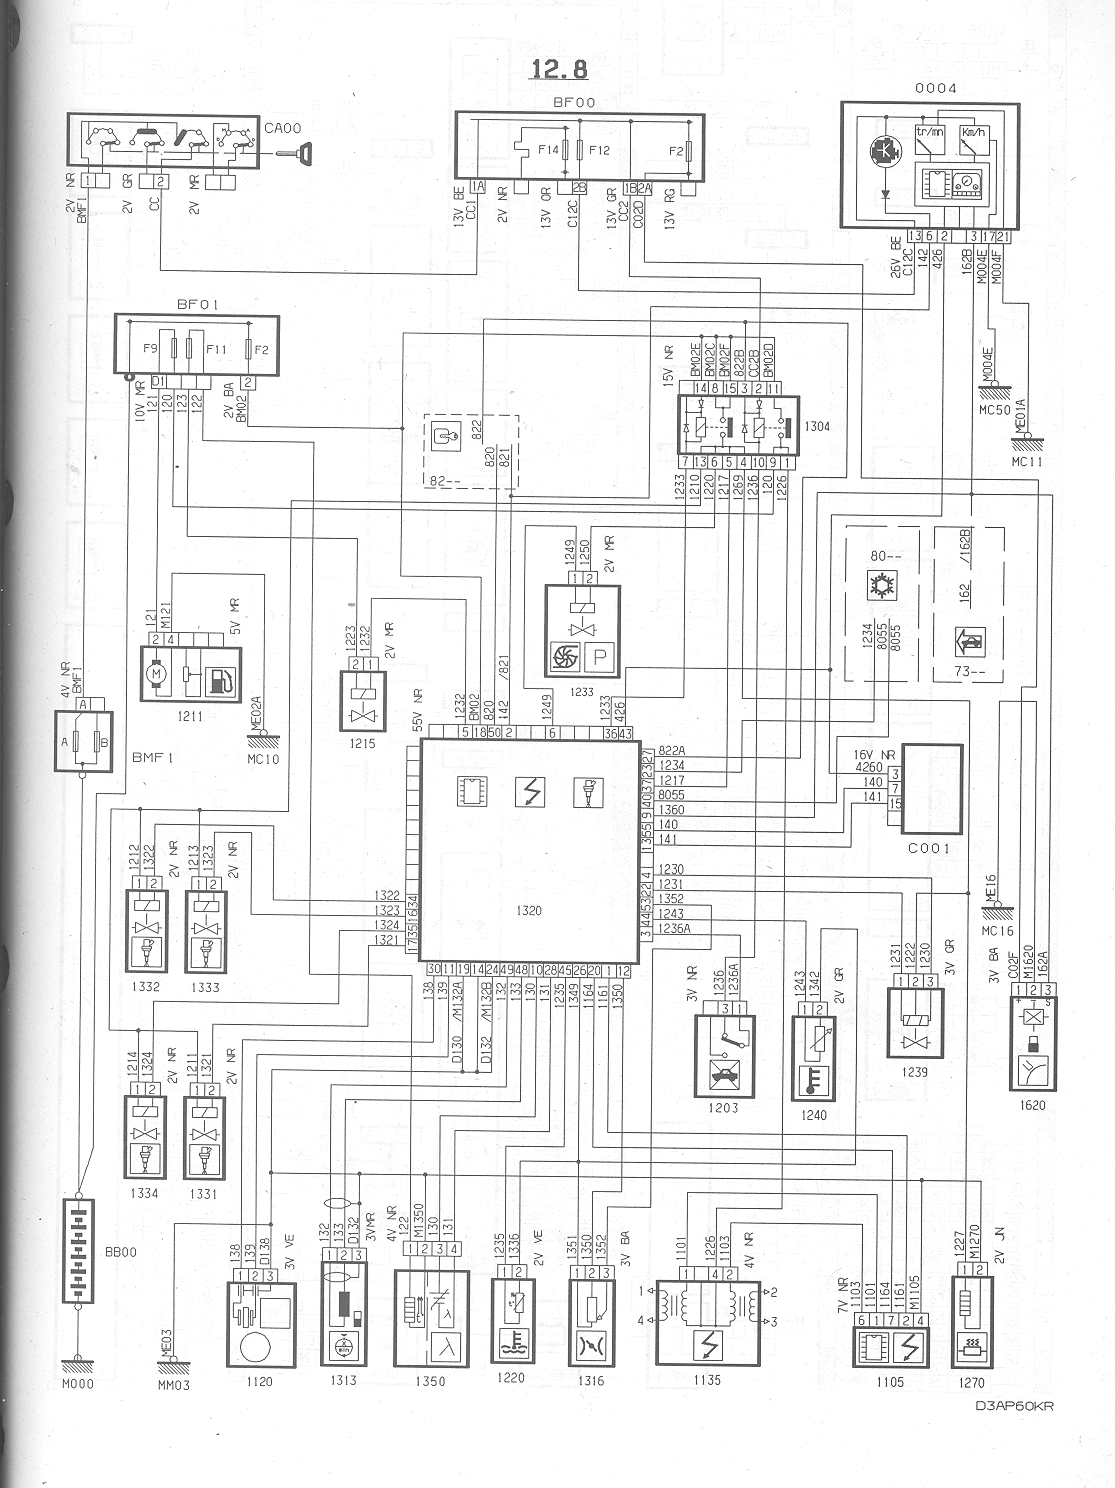 citroen saxo wiring diagram citroen auto wiring diagram schematic saxo vtr wiring diagram radio wiring diagrams and schematics on citroen saxo wiring diagram